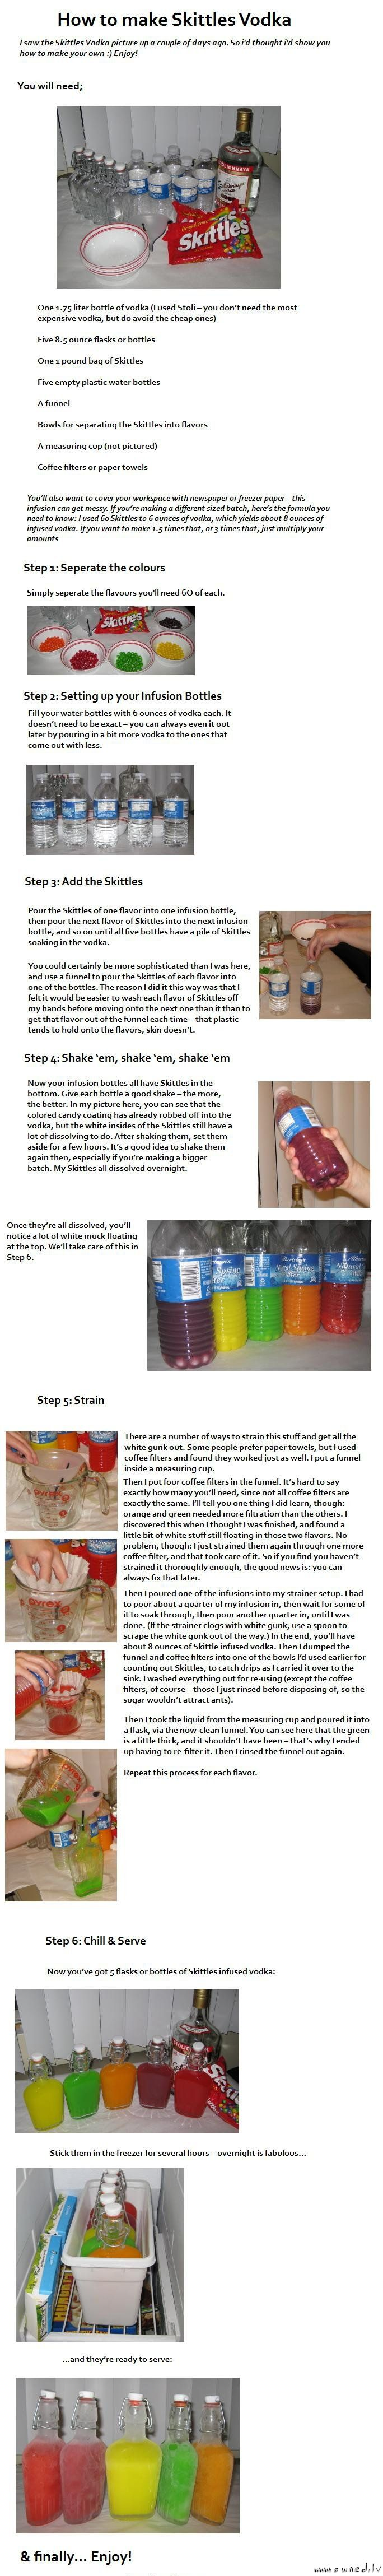 Skittles vodka. Tried both the Lemonhead Vodka and Skittles (lemon) Vodka. Not impressed with either. But the Lemonhead flavor is better if you use more Lemonheads than suggested. The lemonhead has a white film on top that has to be strained off. The skittles has a even worse film that will not drain off. looks nasty